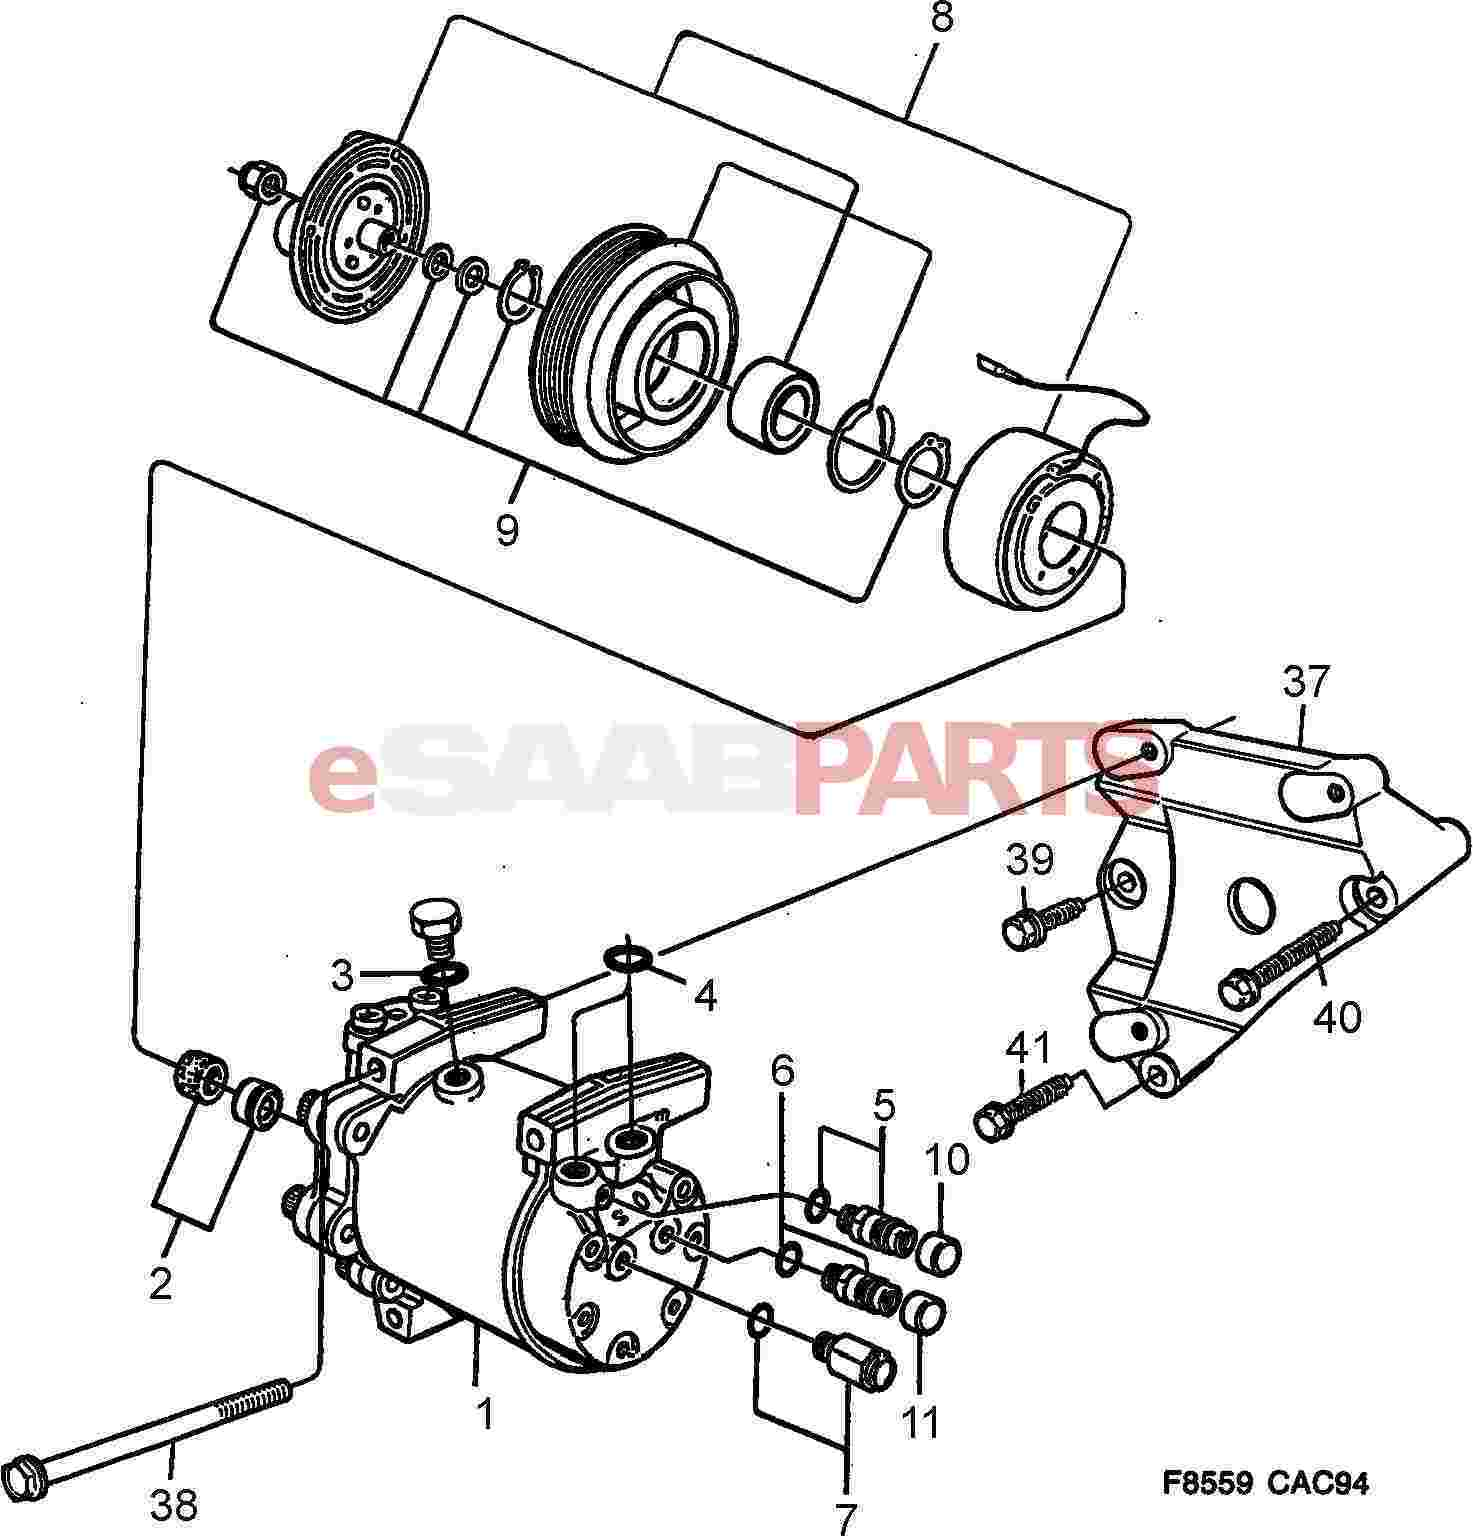 [1993 saab 900 diagram showing brake line] - 9529975 saab ... 1992 saab 900 wiring diagram saab 900 wiring diagram big #13